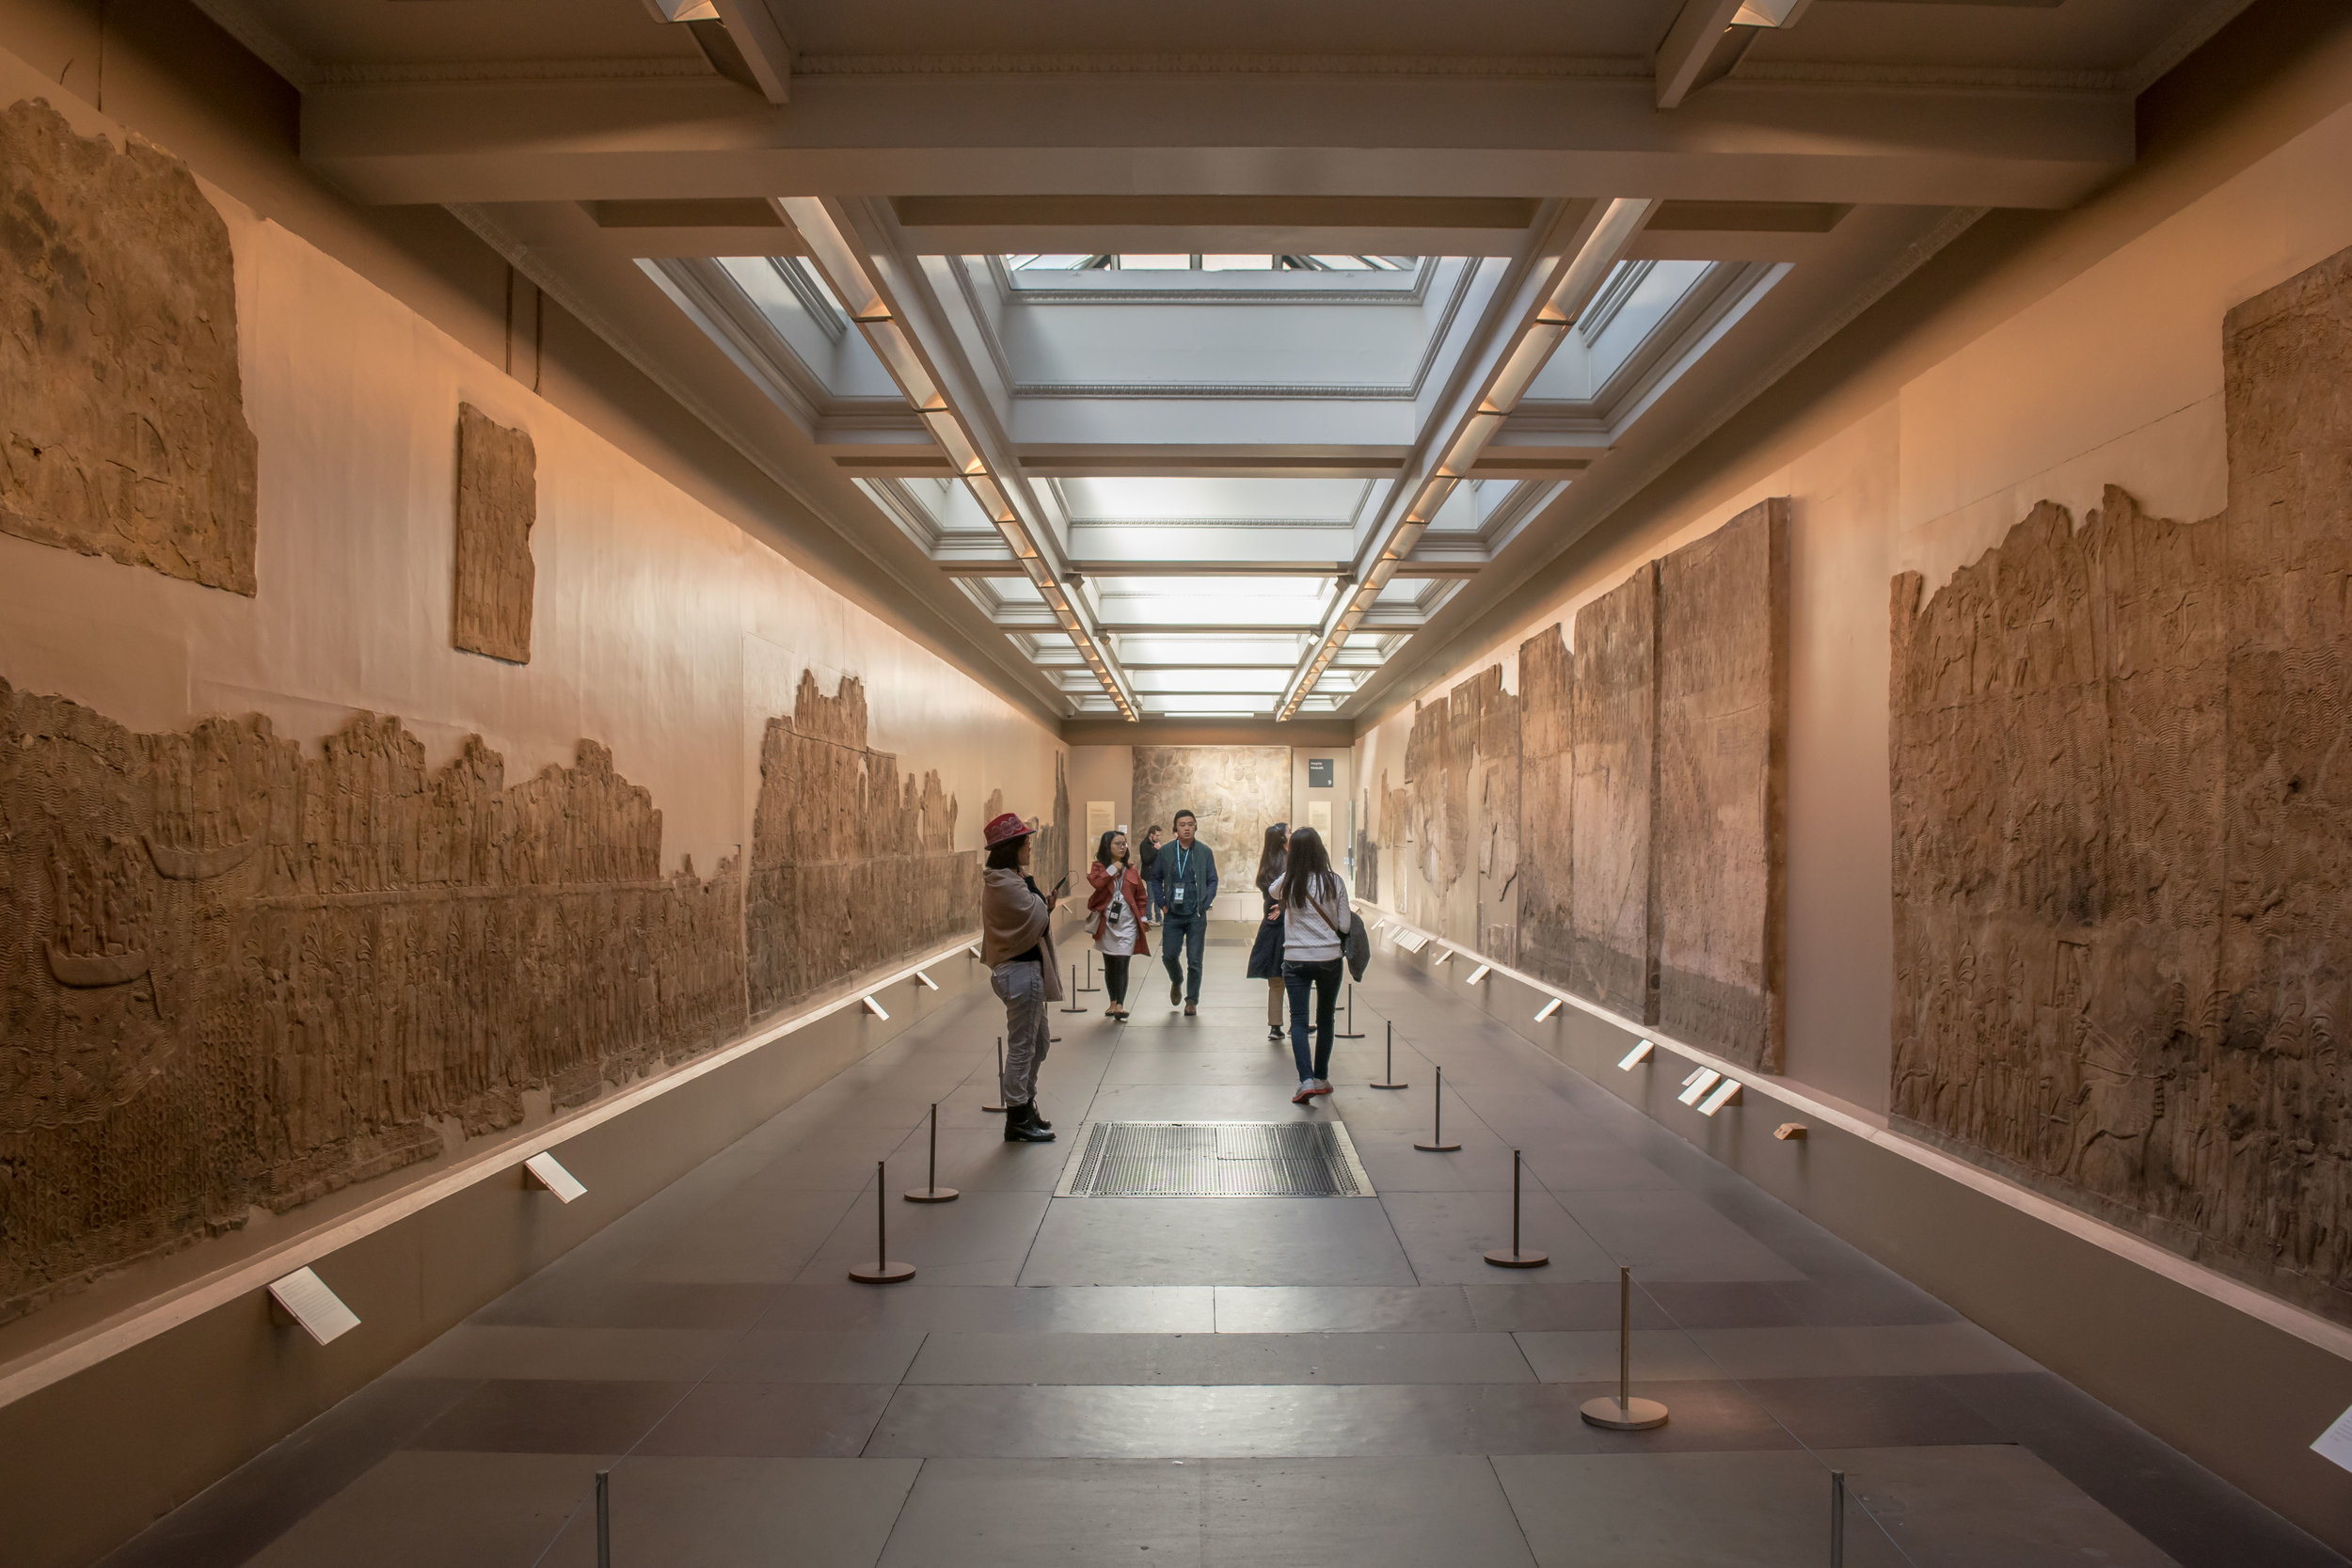 Walkway through the Assyrian Gallery in the British Museum